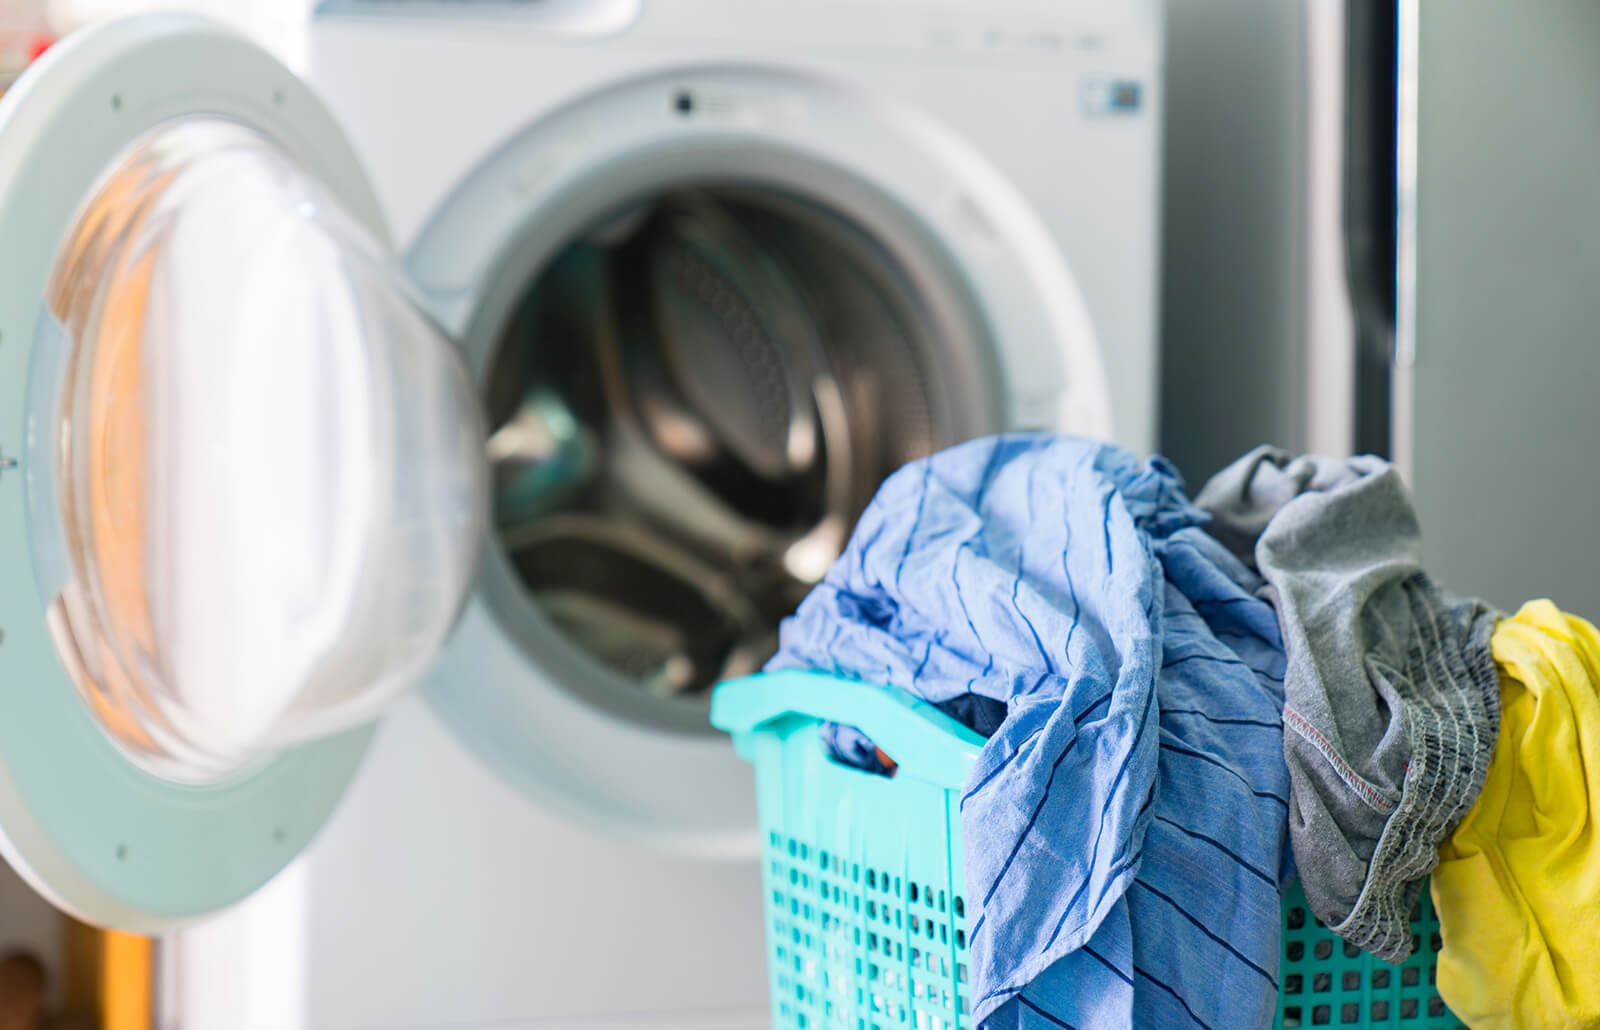 How to Do Laundry: 9 Simple Steps to Fresh & clean clothes